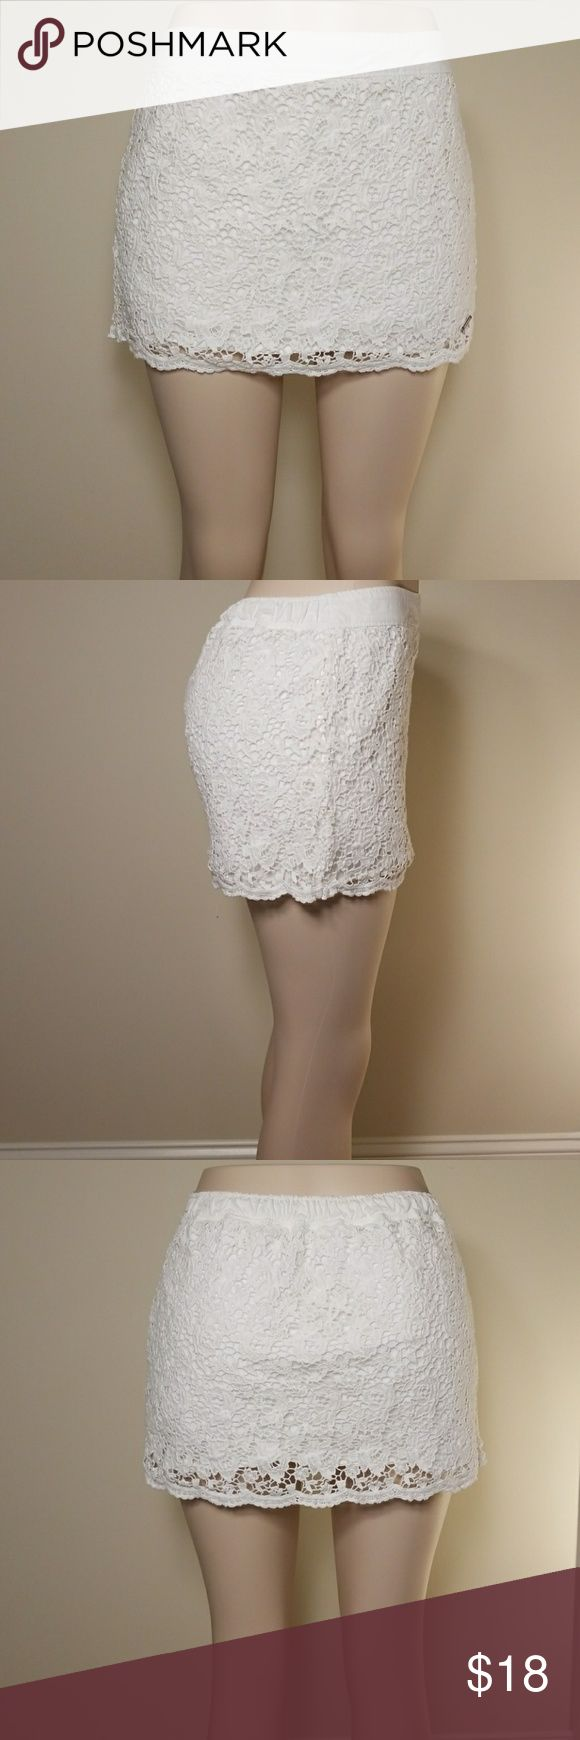 Abercrombie & Fitch lace mini skirt Very cute mini skirt 100% cotton Abercrombie & Fitch Skirts Mini